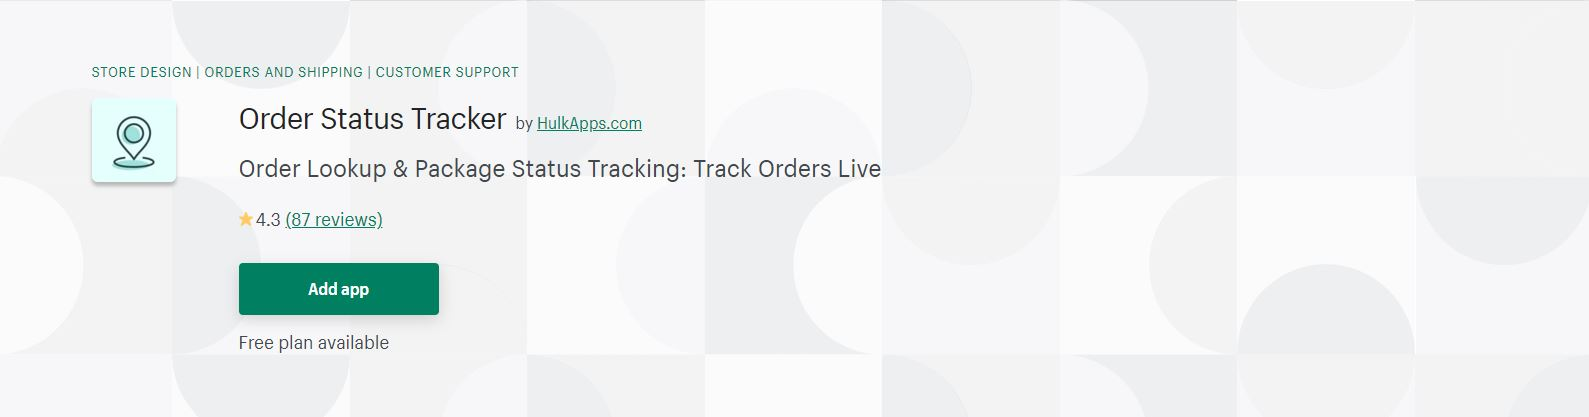 Shopify order tracking app